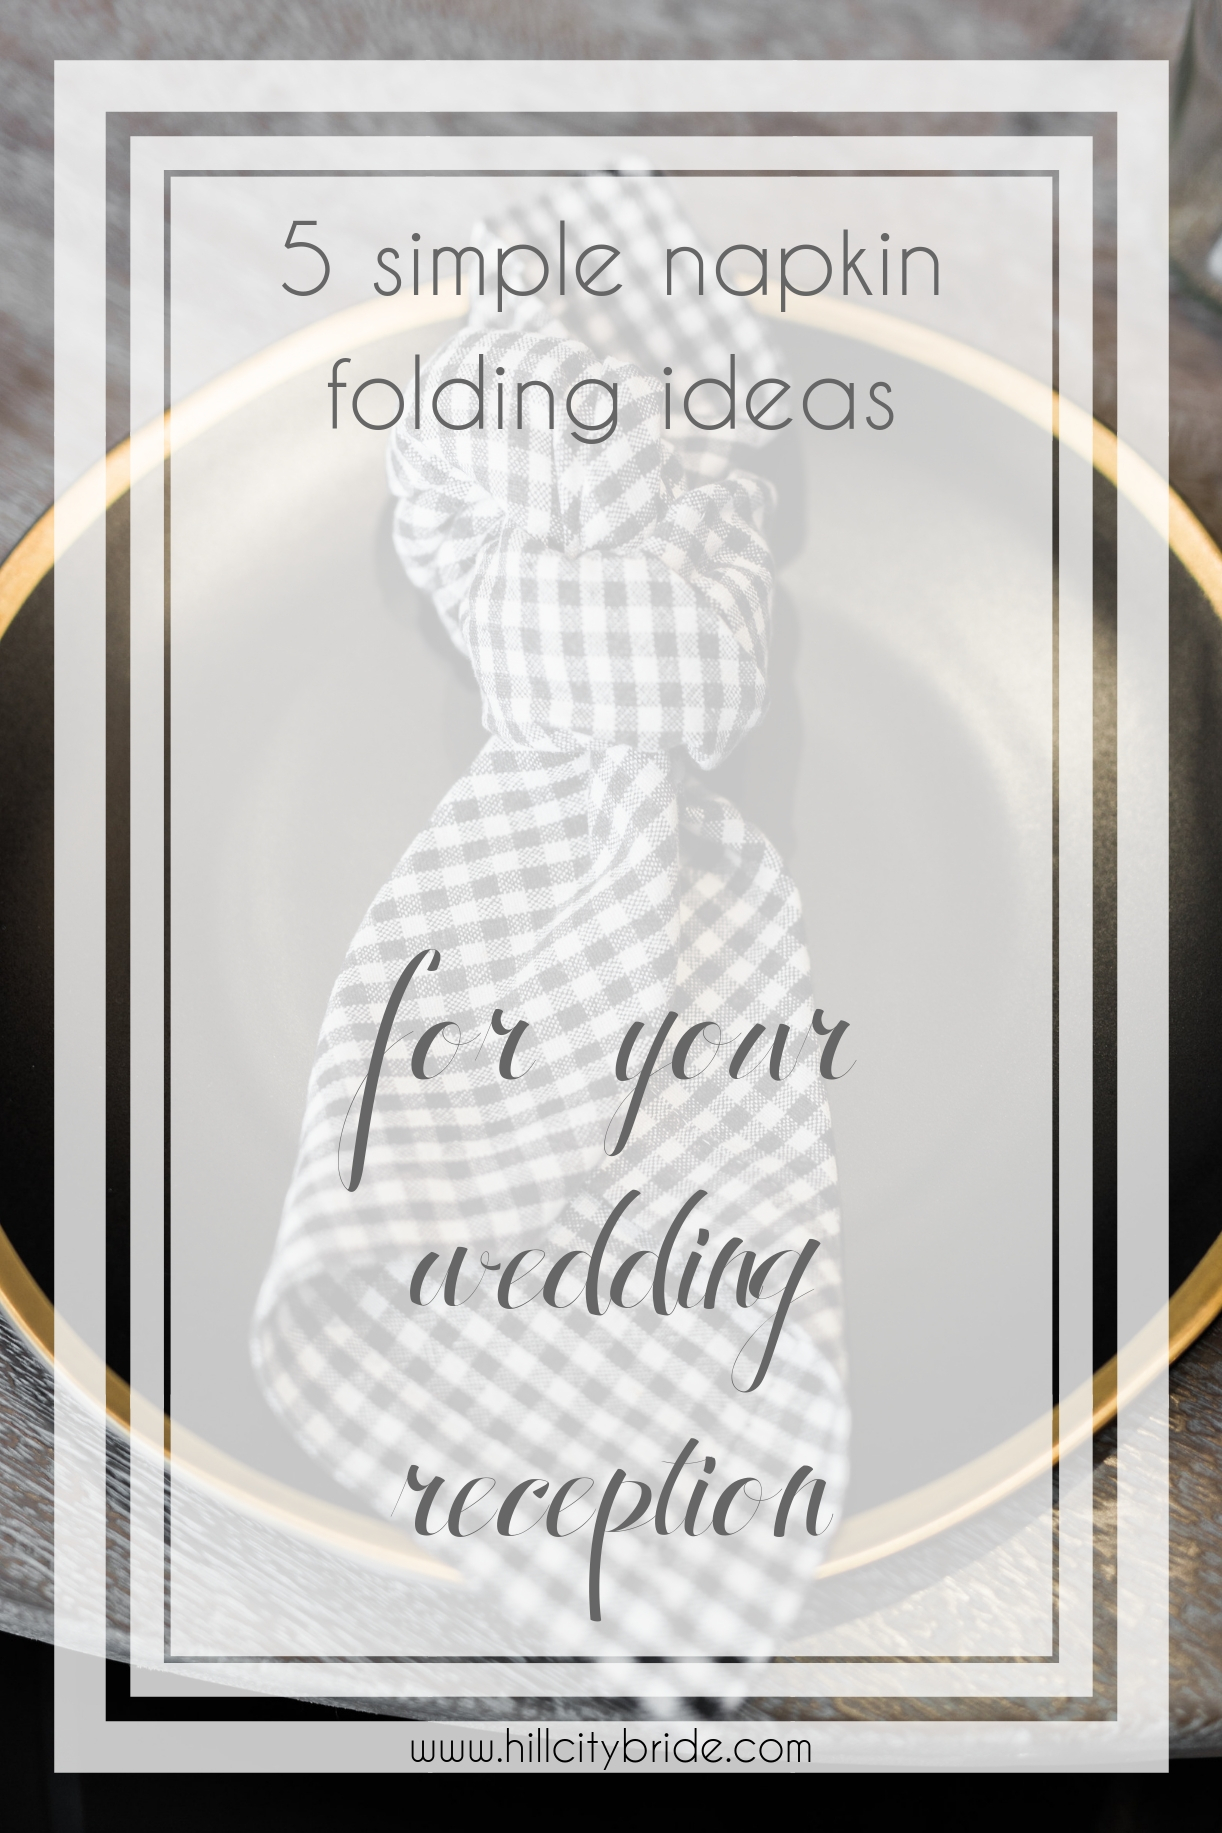 5 Simple Napkin Folding Ideas For Your Wedding Reception Hill City Bride